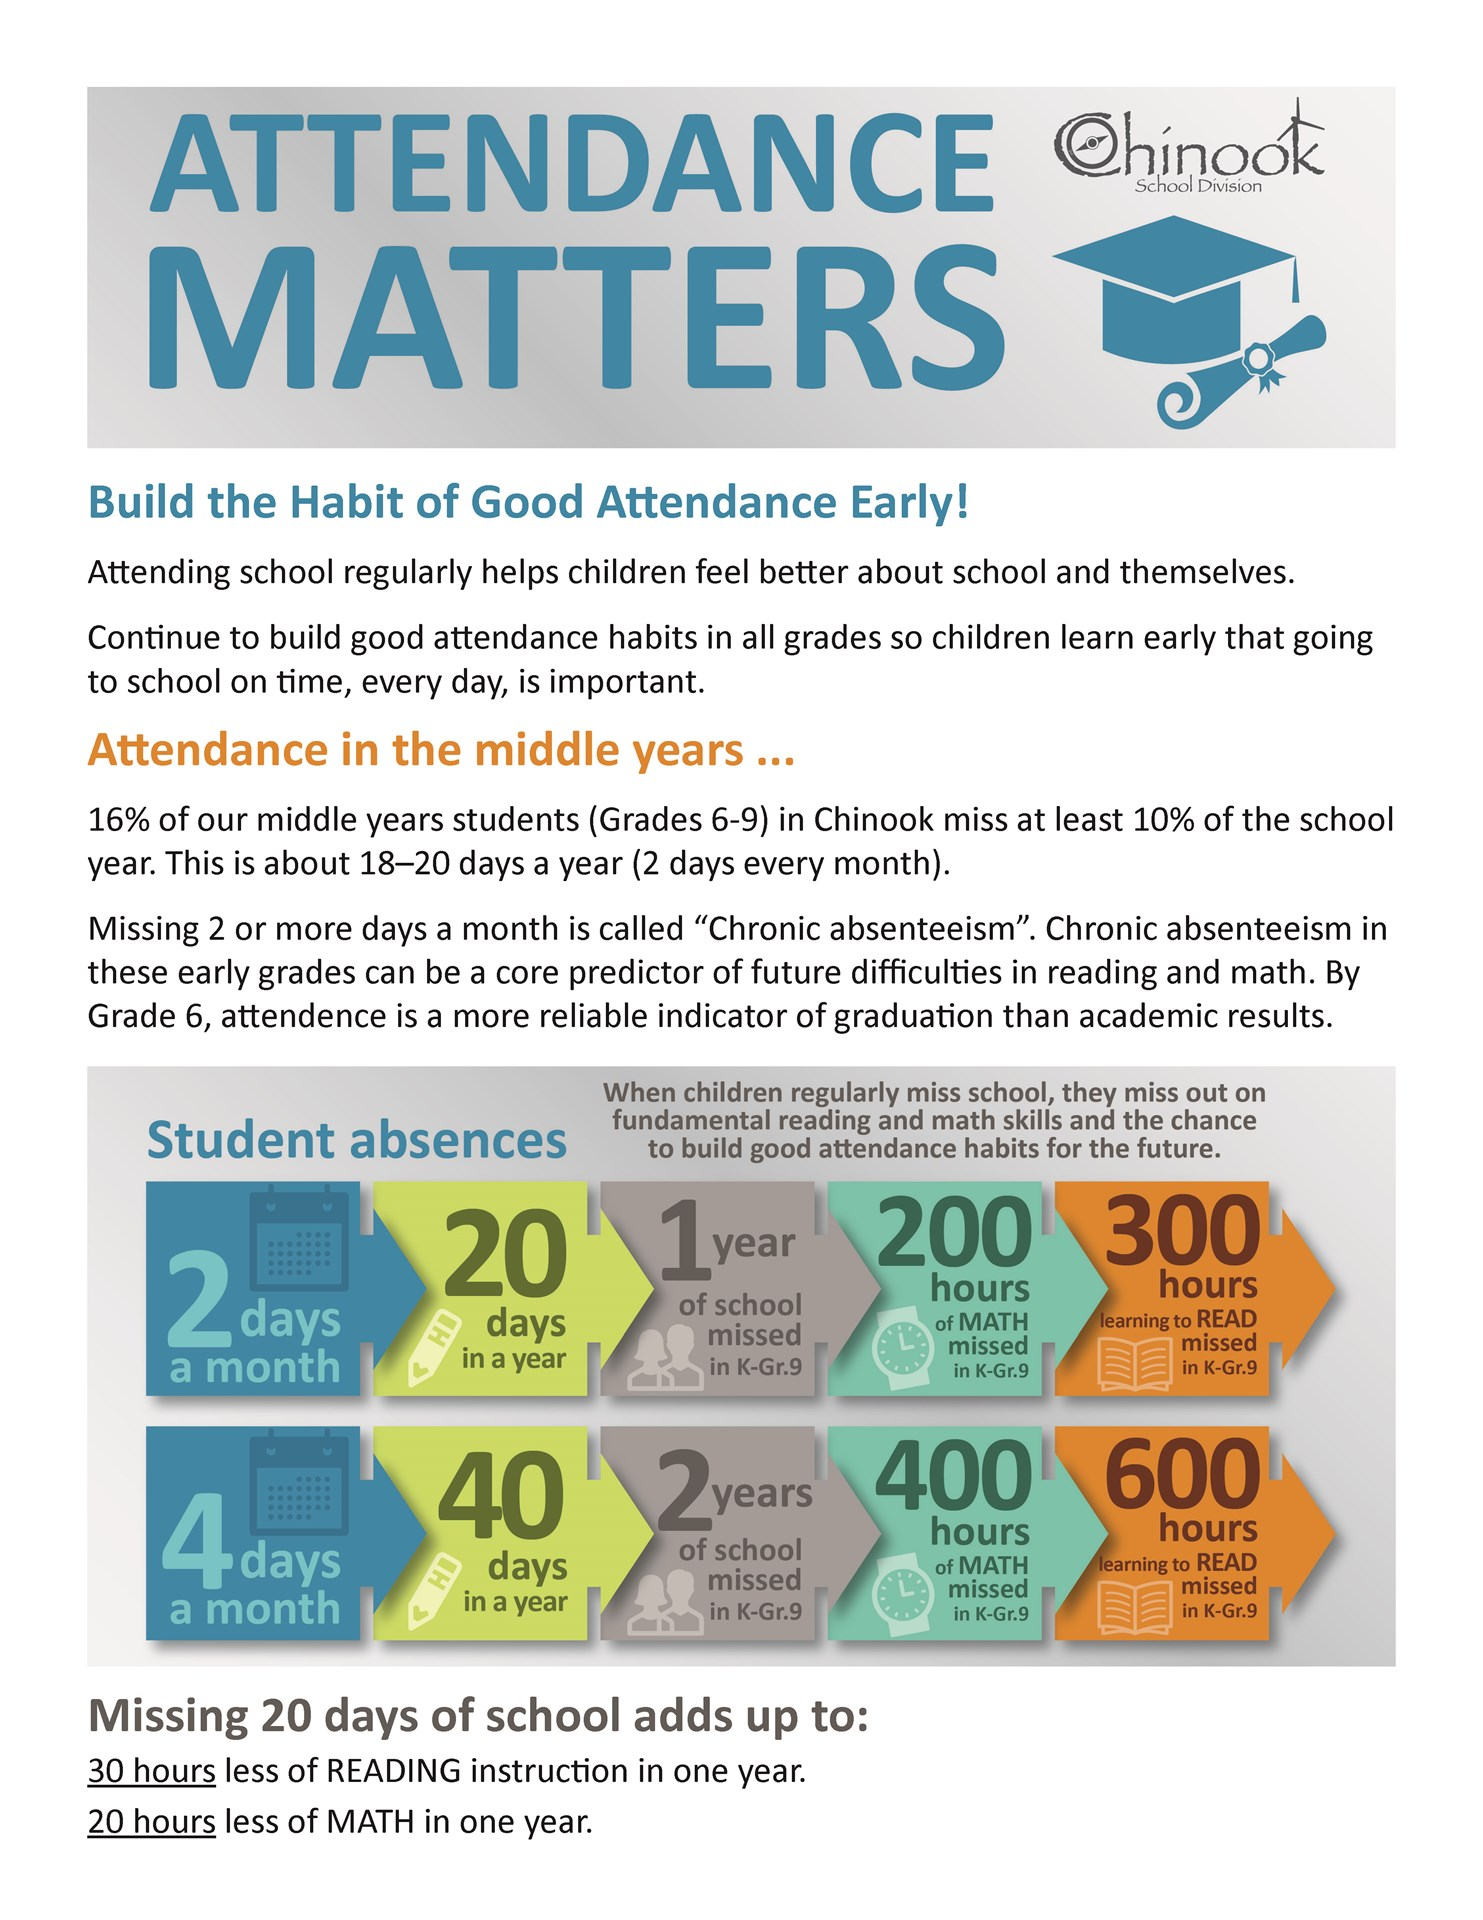 Attendance matters in the middle years